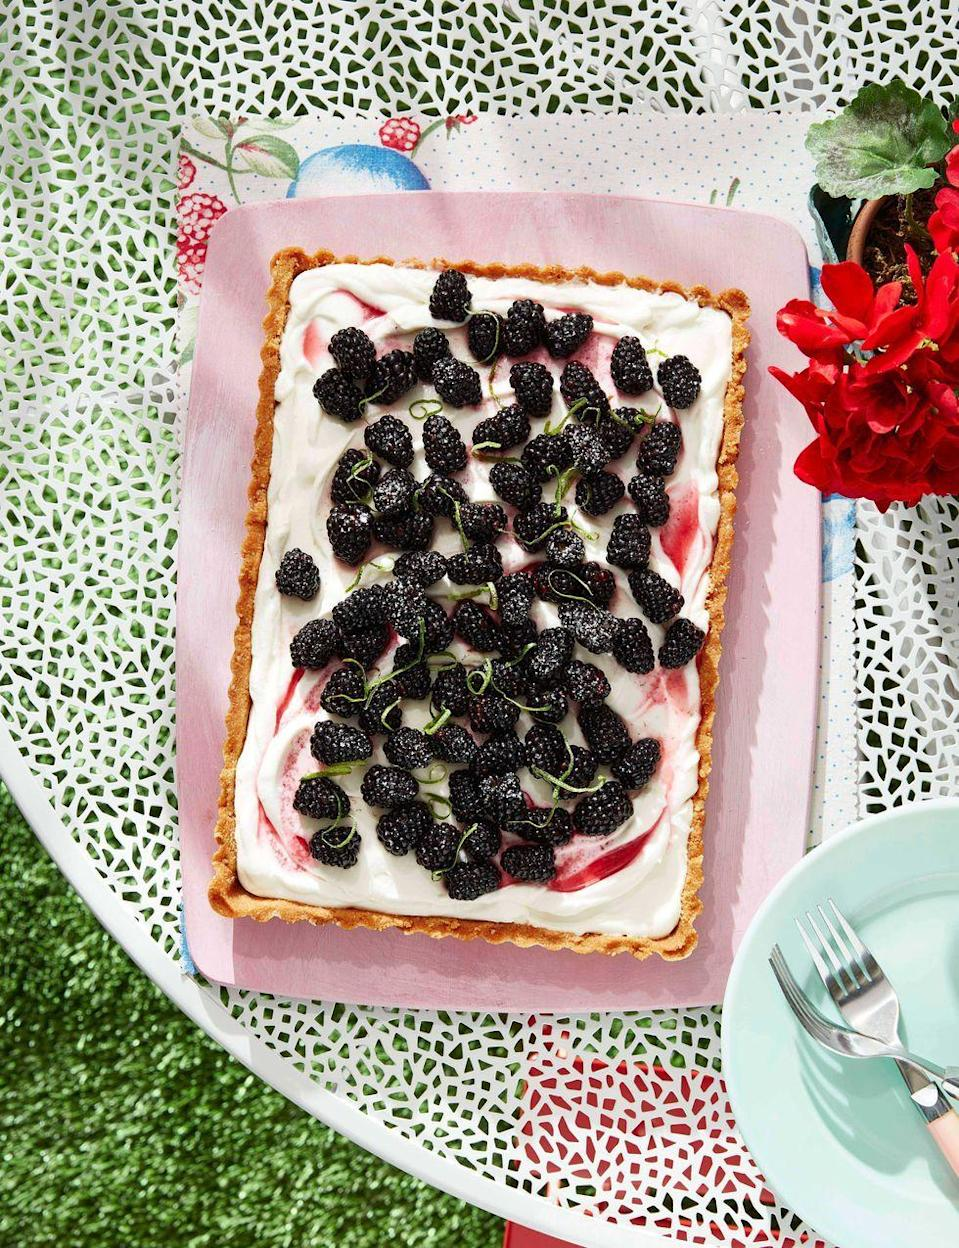 "<p>Fresh blackberries and coconut make for a delicious, not-too-sweet dessert perfect for springtime.</p><p><strong><a href=""https://www.countryliving.com/food-drinks/a32352700/blackberry-coconut-tart/"" rel=""nofollow noopener"" target=""_blank"" data-ylk=""slk:Get the recipe"" class=""link rapid-noclick-resp"">Get the recipe</a>.</strong></p><p><a class=""link rapid-noclick-resp"" href=""https://www.amazon.com/Fox-Run-44505-Rectangular-Preferred/dp/B000QJ02QW?tag=syn-yahoo-20&ascsubtag=%5Bartid%7C10050.g.4238%5Bsrc%7Cyahoo-us"" rel=""nofollow noopener"" target=""_blank"" data-ylk=""slk:SHOP TART PANS"">SHOP TART PANS</a><br></p>"